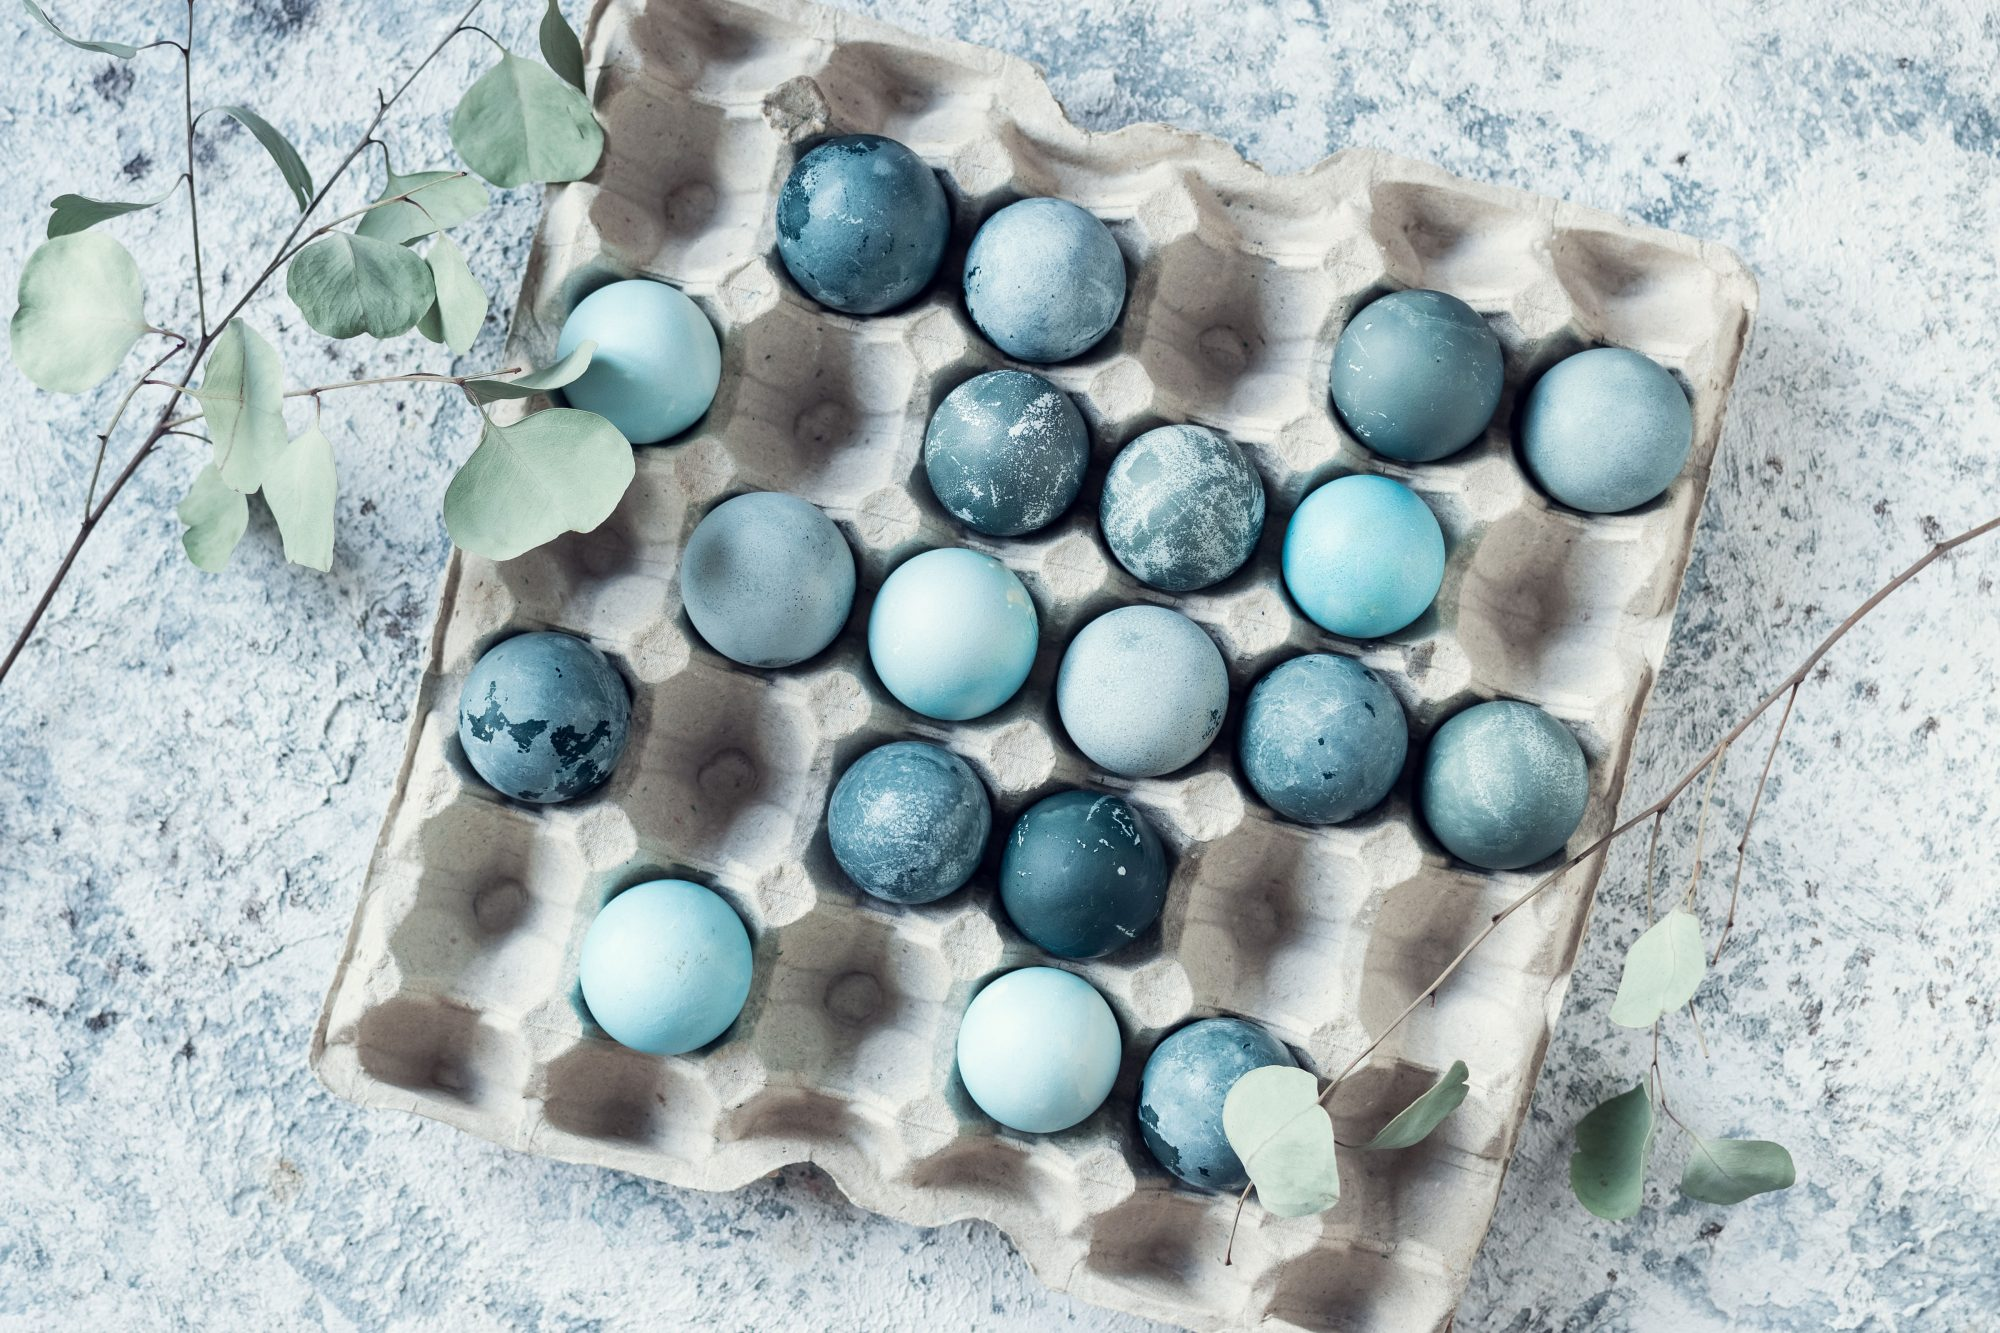 Blue Dyed Easter Eggs in Egg Crate